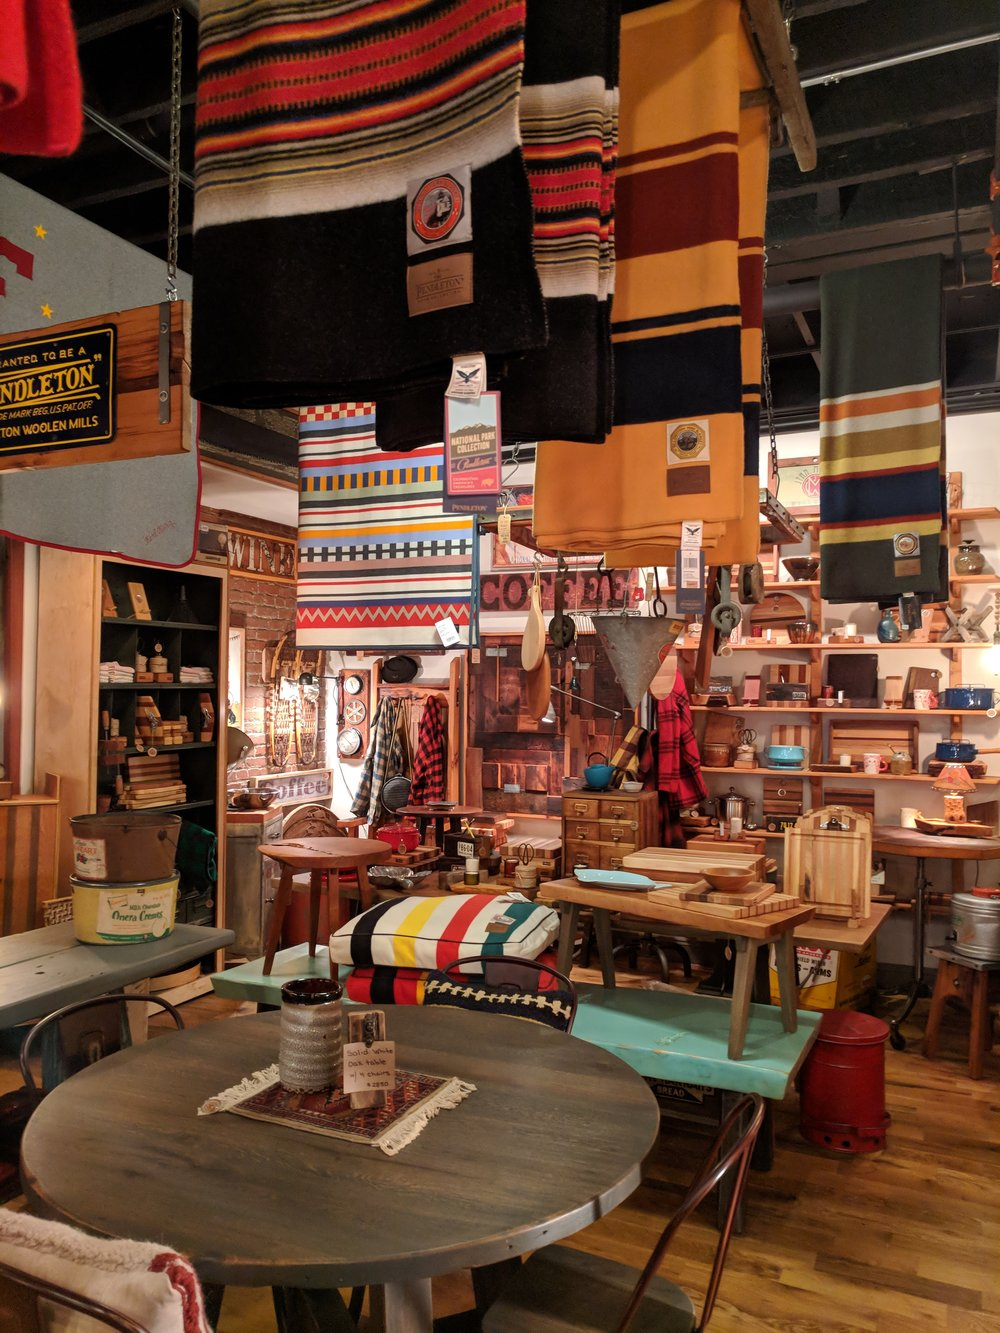 Jonathan Moran Woodworks - Visit this cozy shop in the new Pennsylvania Market building on 19th Street to find gorgeous, hand crafted wood pieces. From furniture, to cutting boards, to bar accessories, you can't go wrong gifting one of these items!